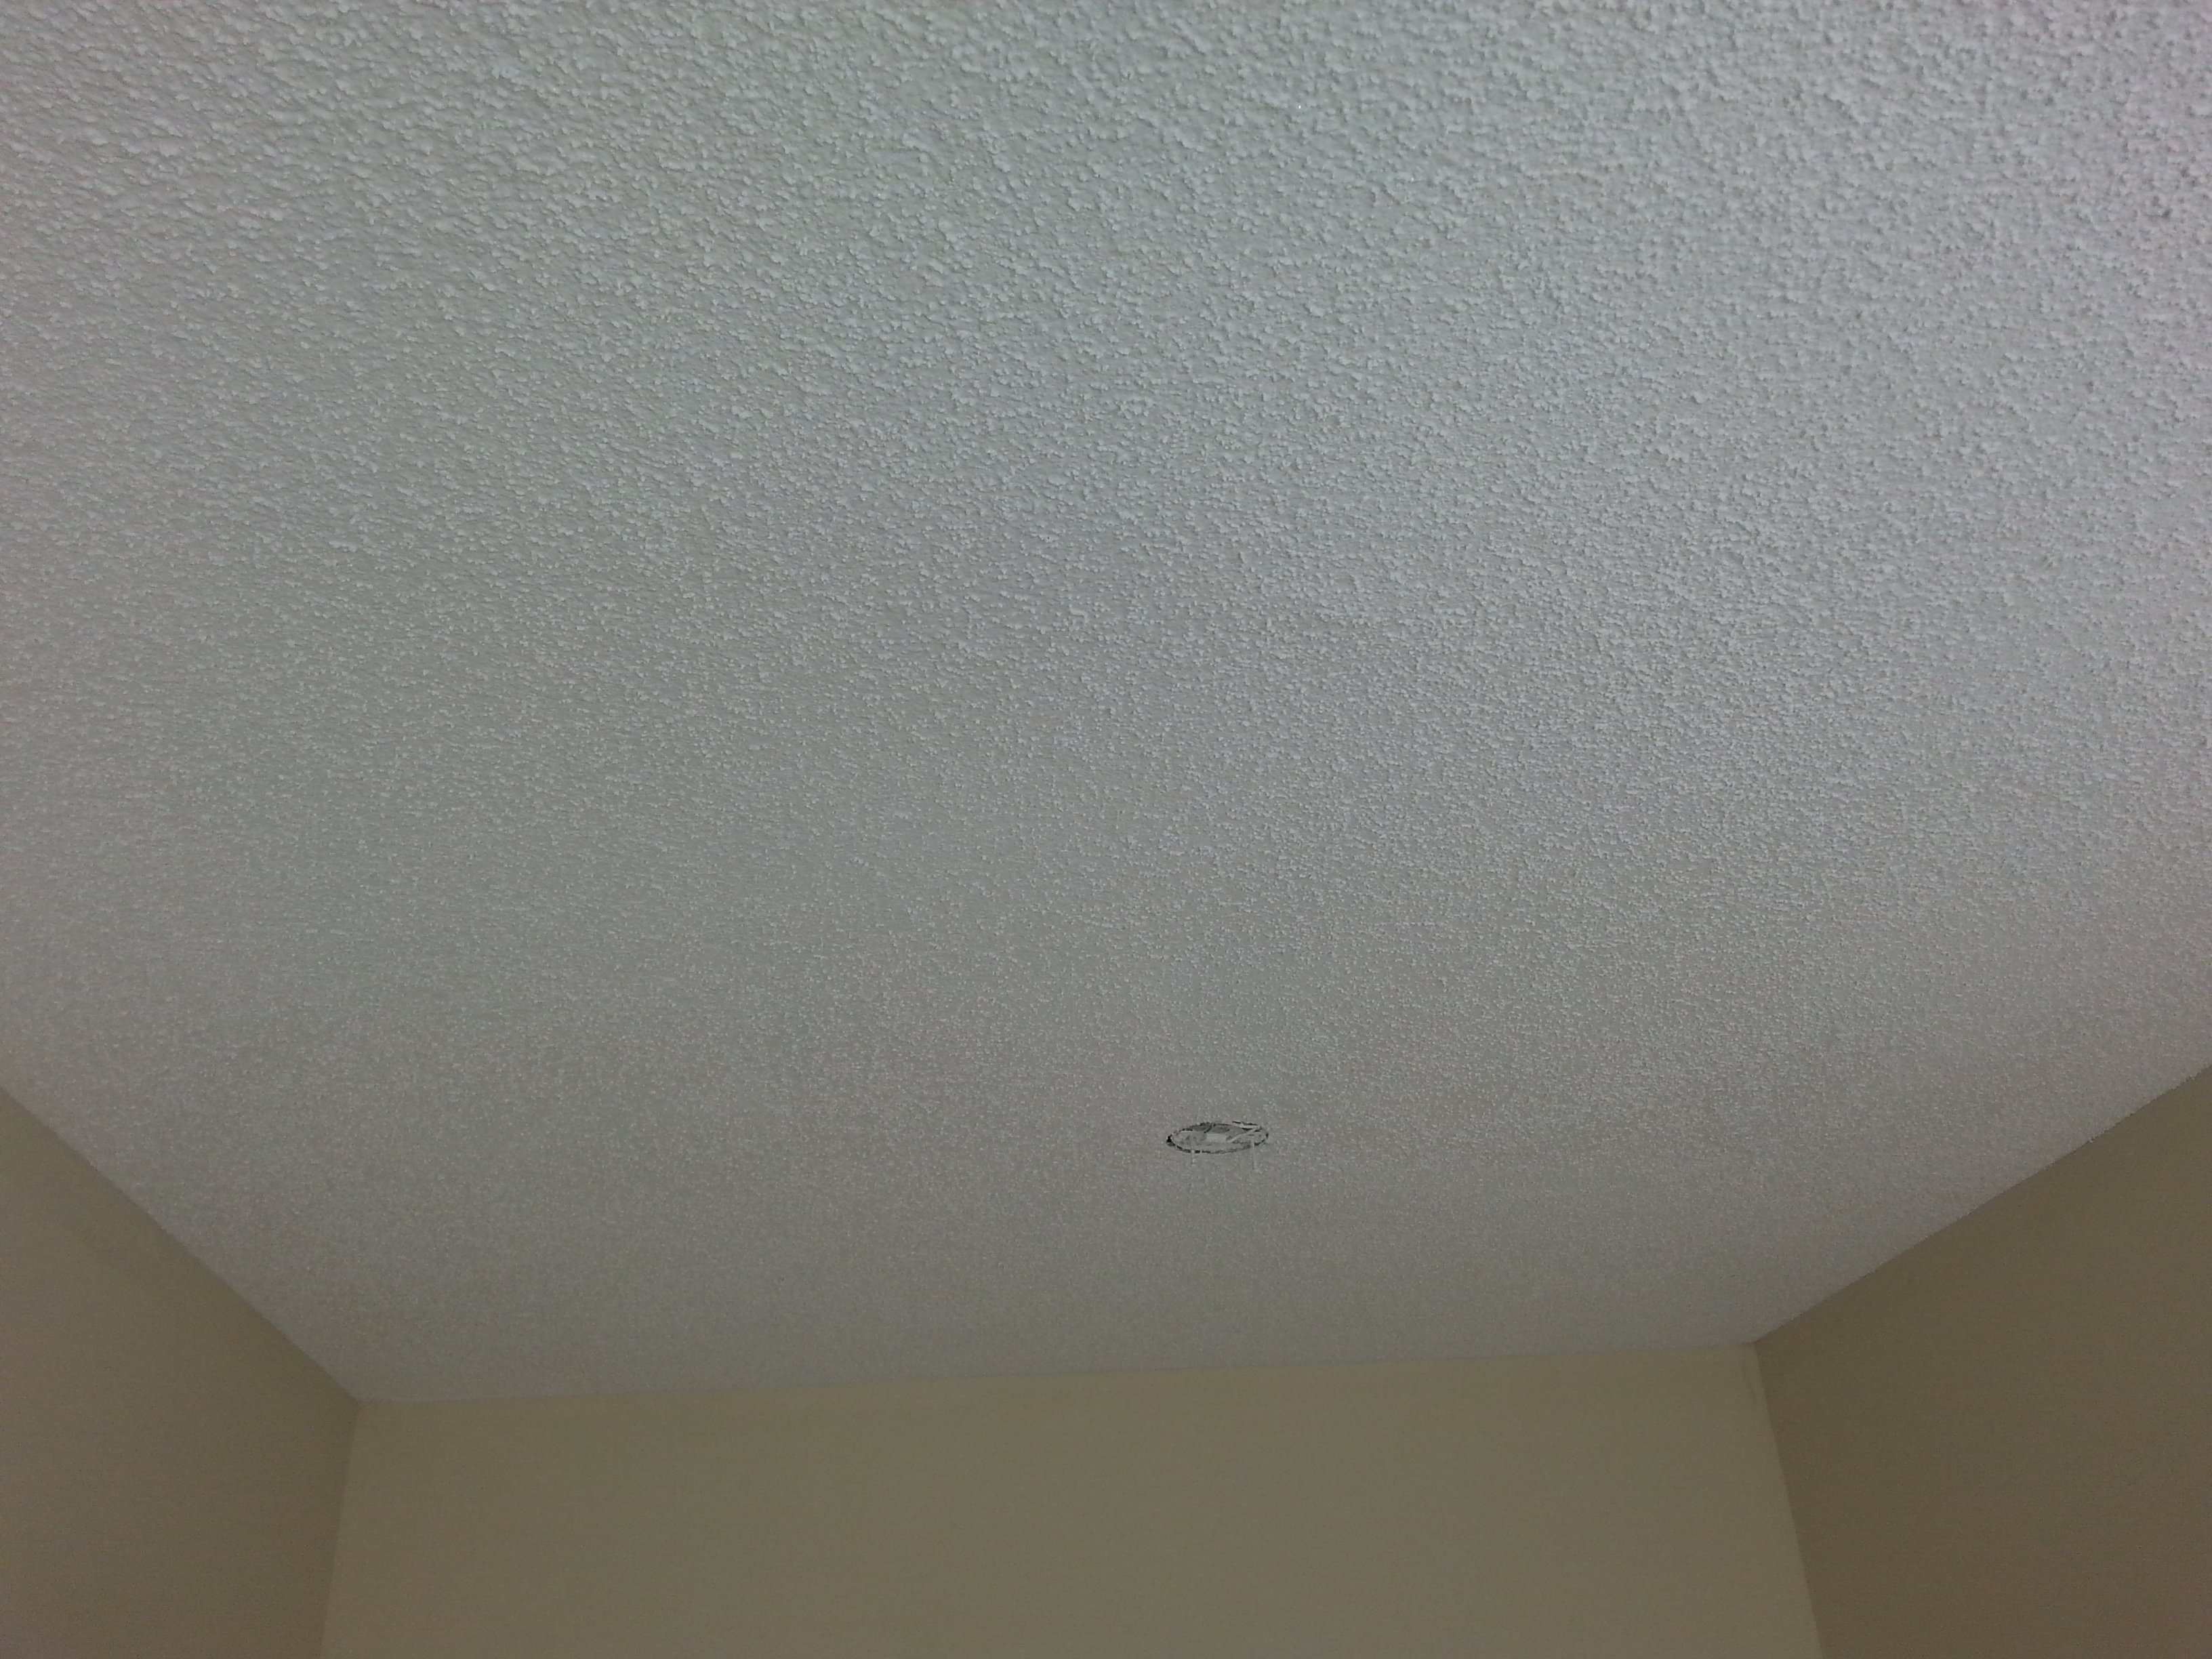 water stains on your ceiling